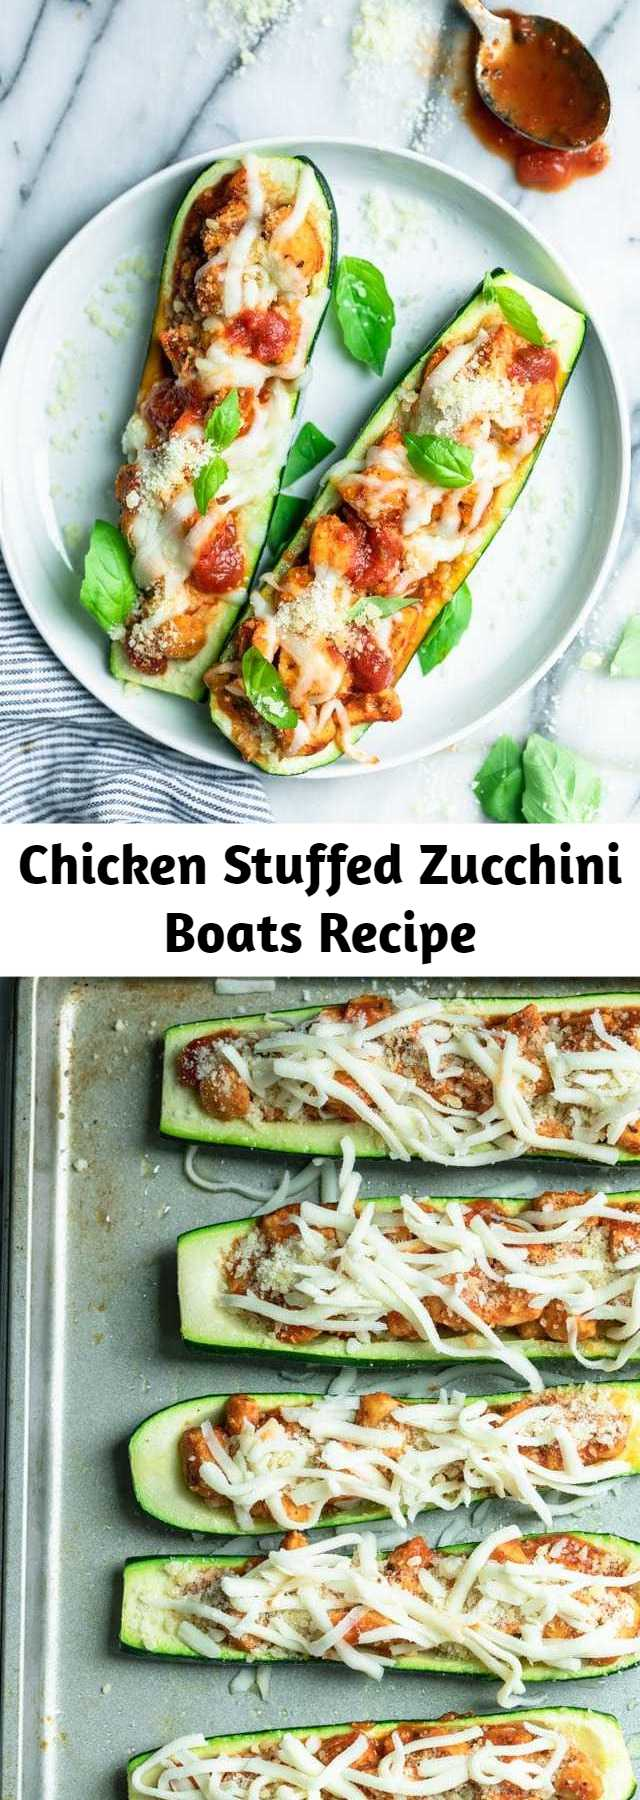 Chicken Stuffed Zucchini Boats Recipe - These Stuffed zucchini boats are easy, Keto friendly and low carb. Stuffed with chicken, marinara and topped with cheese, they make a quick and easy meal. #whole30 #keto #lowcarb #dinner #healthy